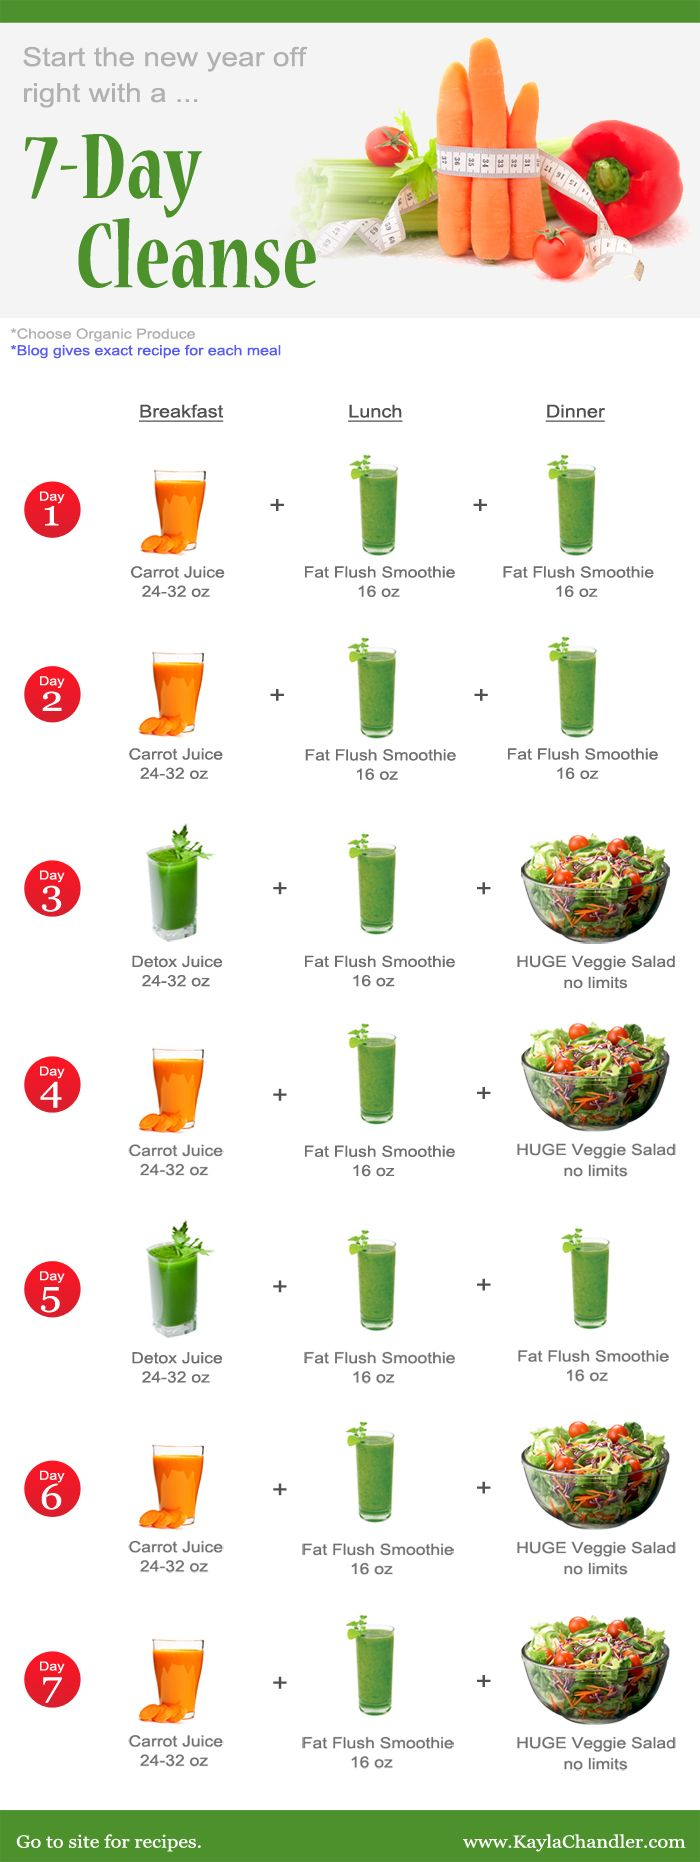 Will be doing this after the holidays! 7-Day Detox Cleanse with recipes for each day.